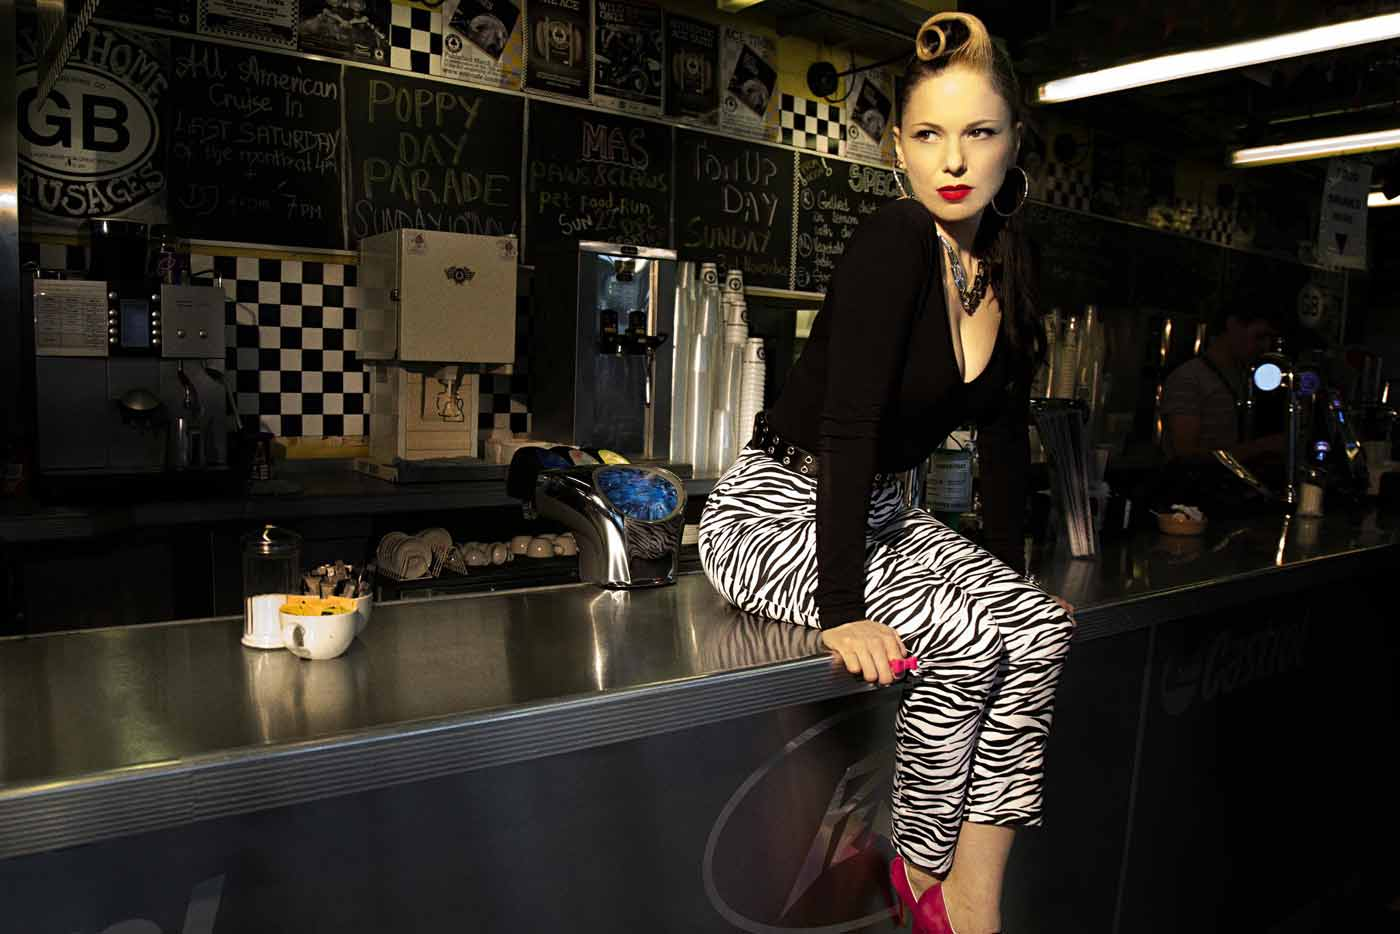 Imelda May y The Scientists se suman al Azkena